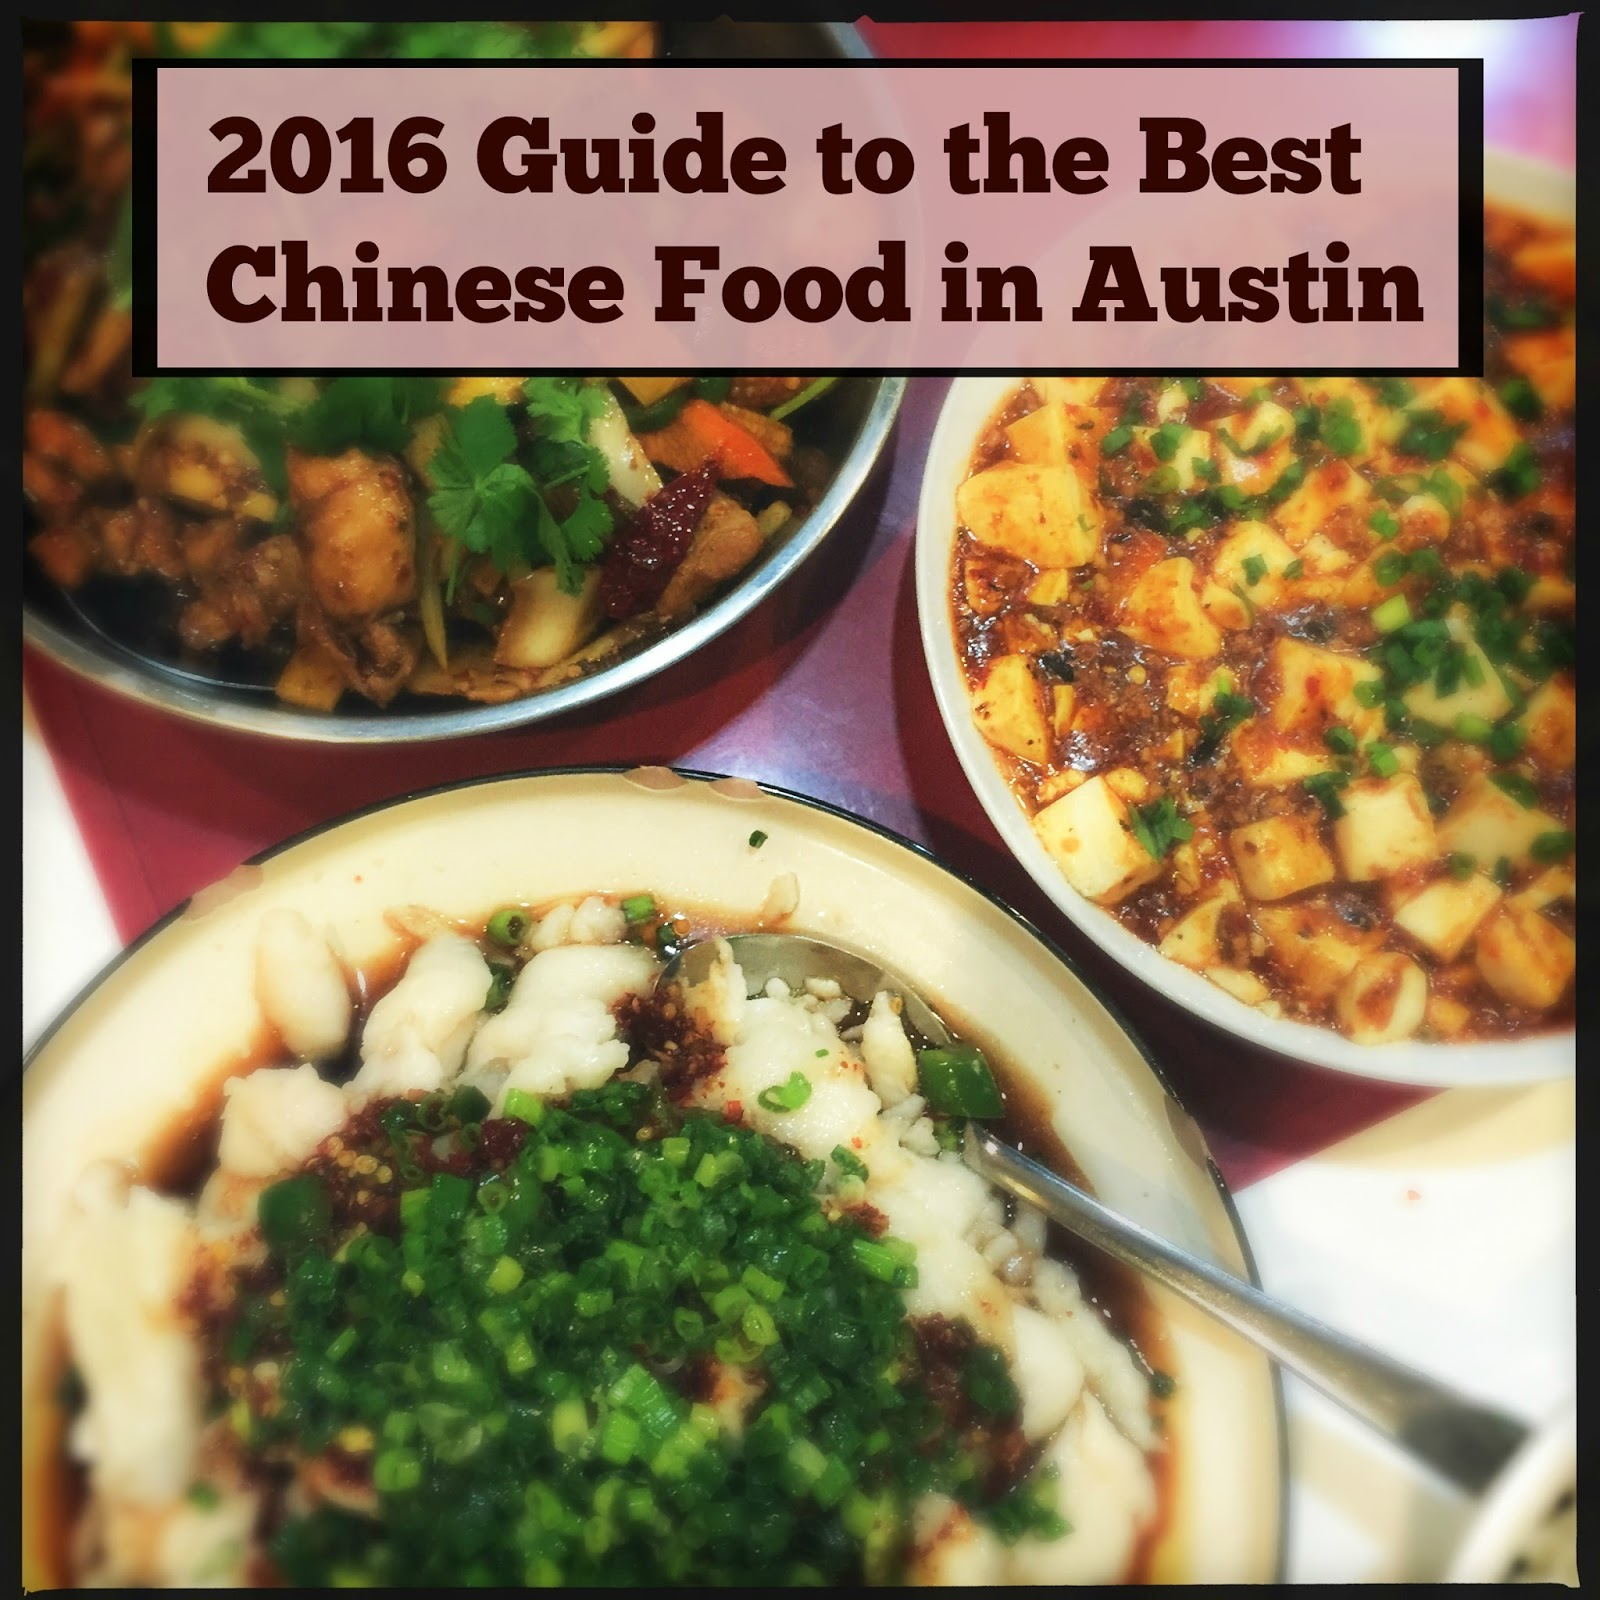 Foodie is the new forty afba 2016 city guide best chinese food in afba 2016 city guide best chinese food in austin forumfinder Images